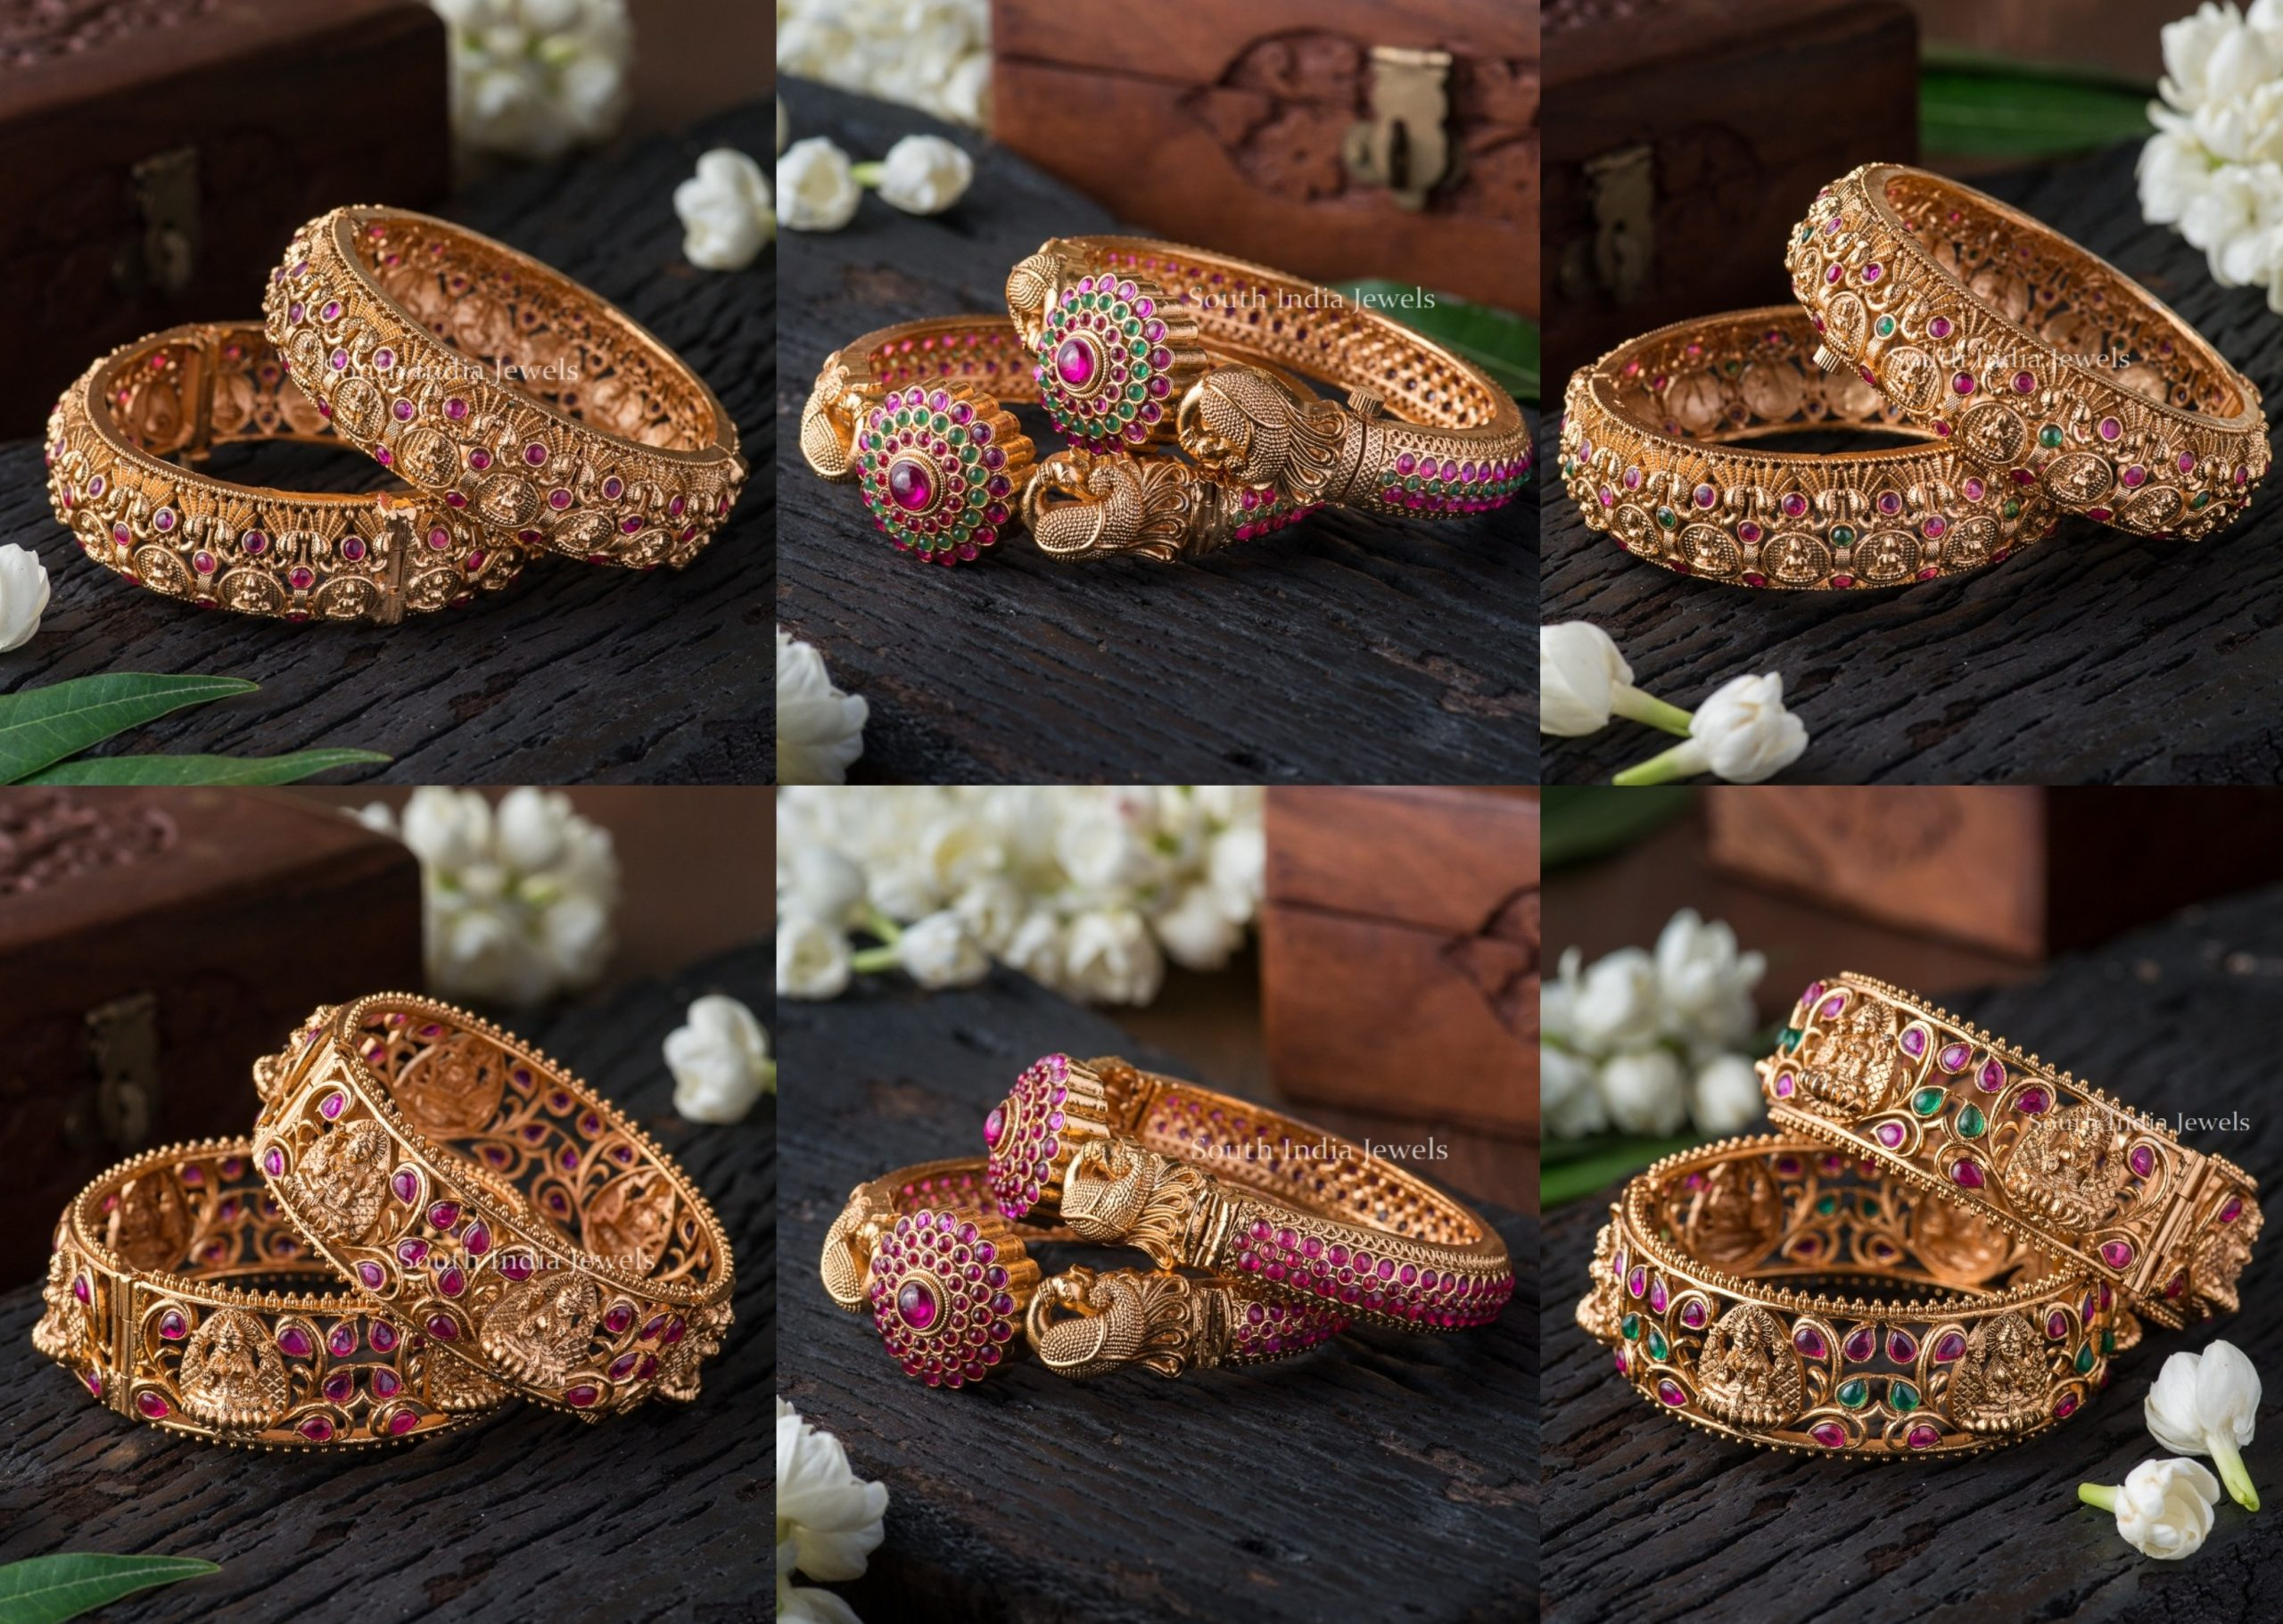 Antique Nakshi And Kemp Bangles By South India Jewels